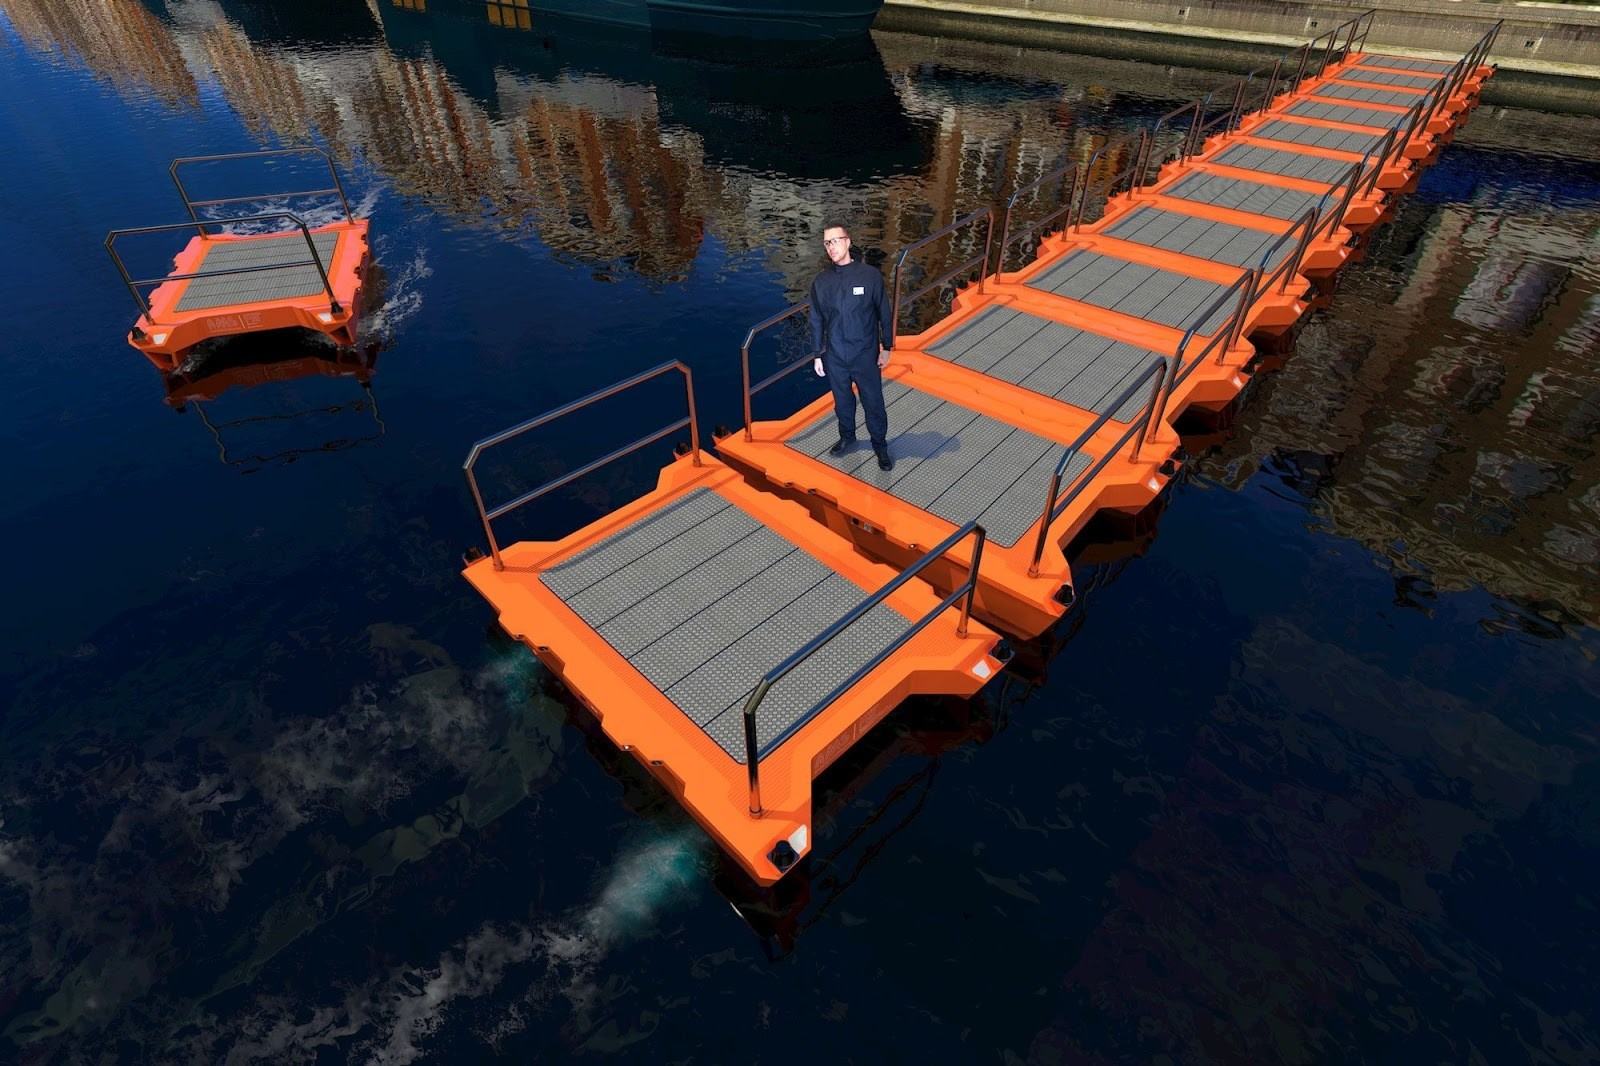 'On-demand infrastructure': the boats can form temporary bridges.